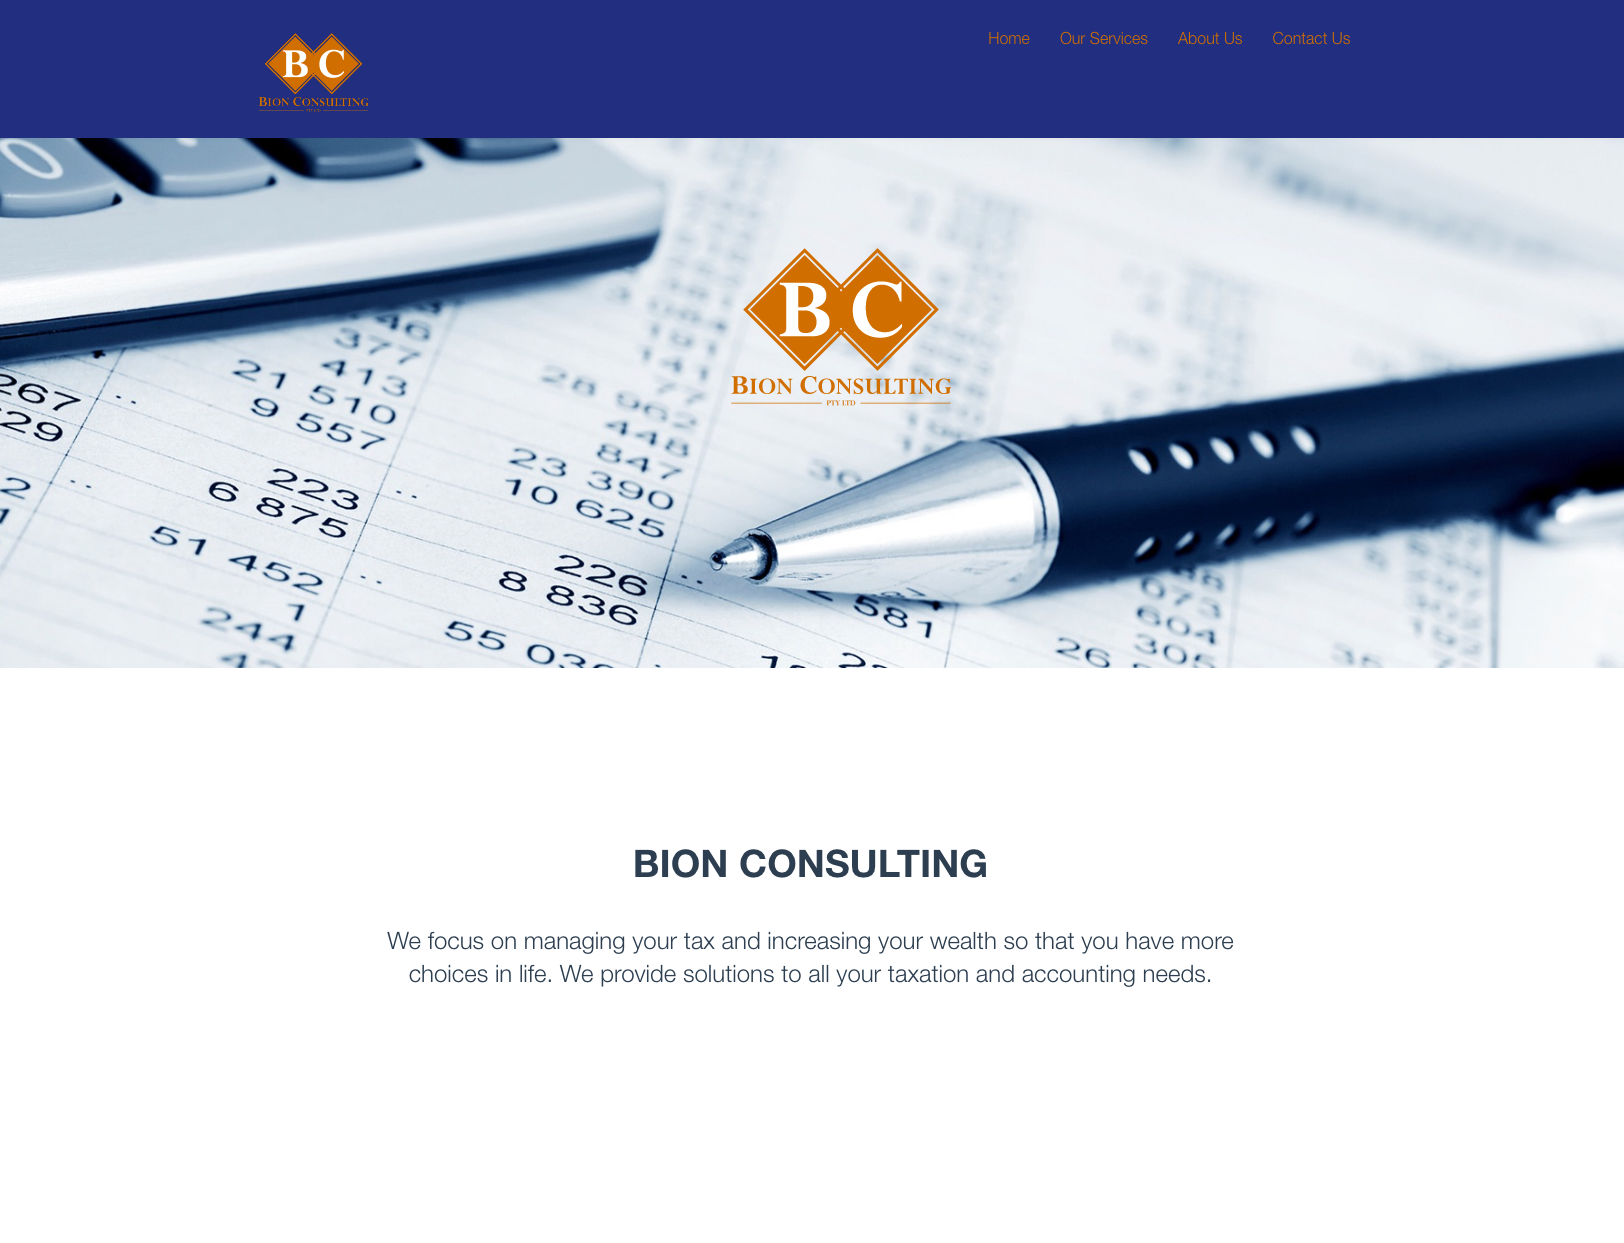 Bion Consulting website